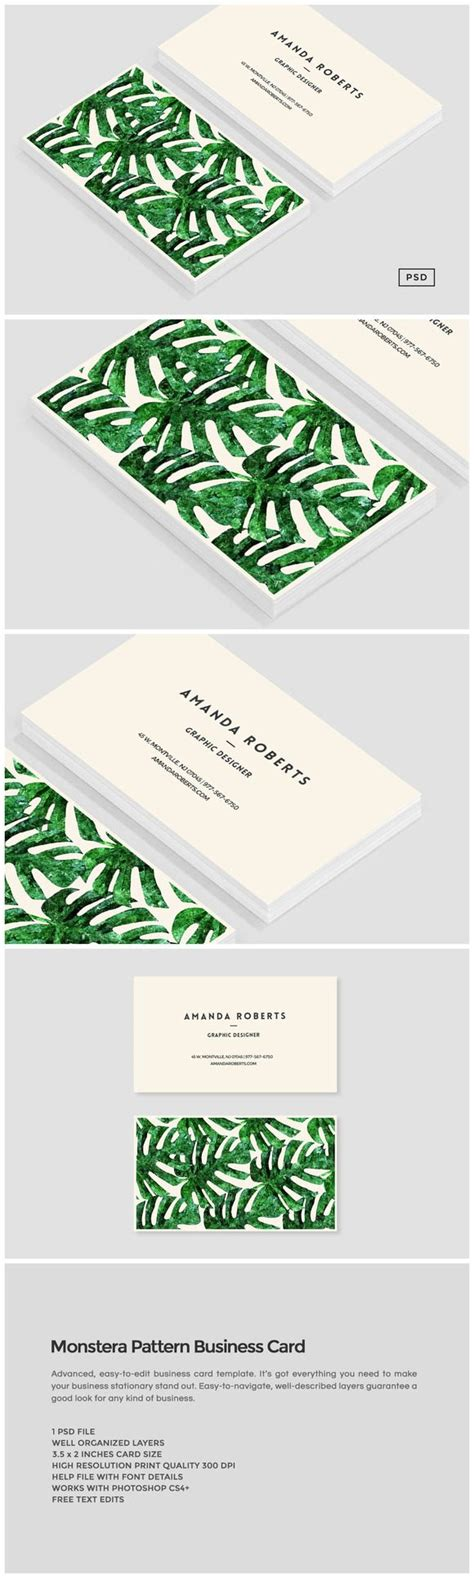 make free business cards customize your own business cards free business card design